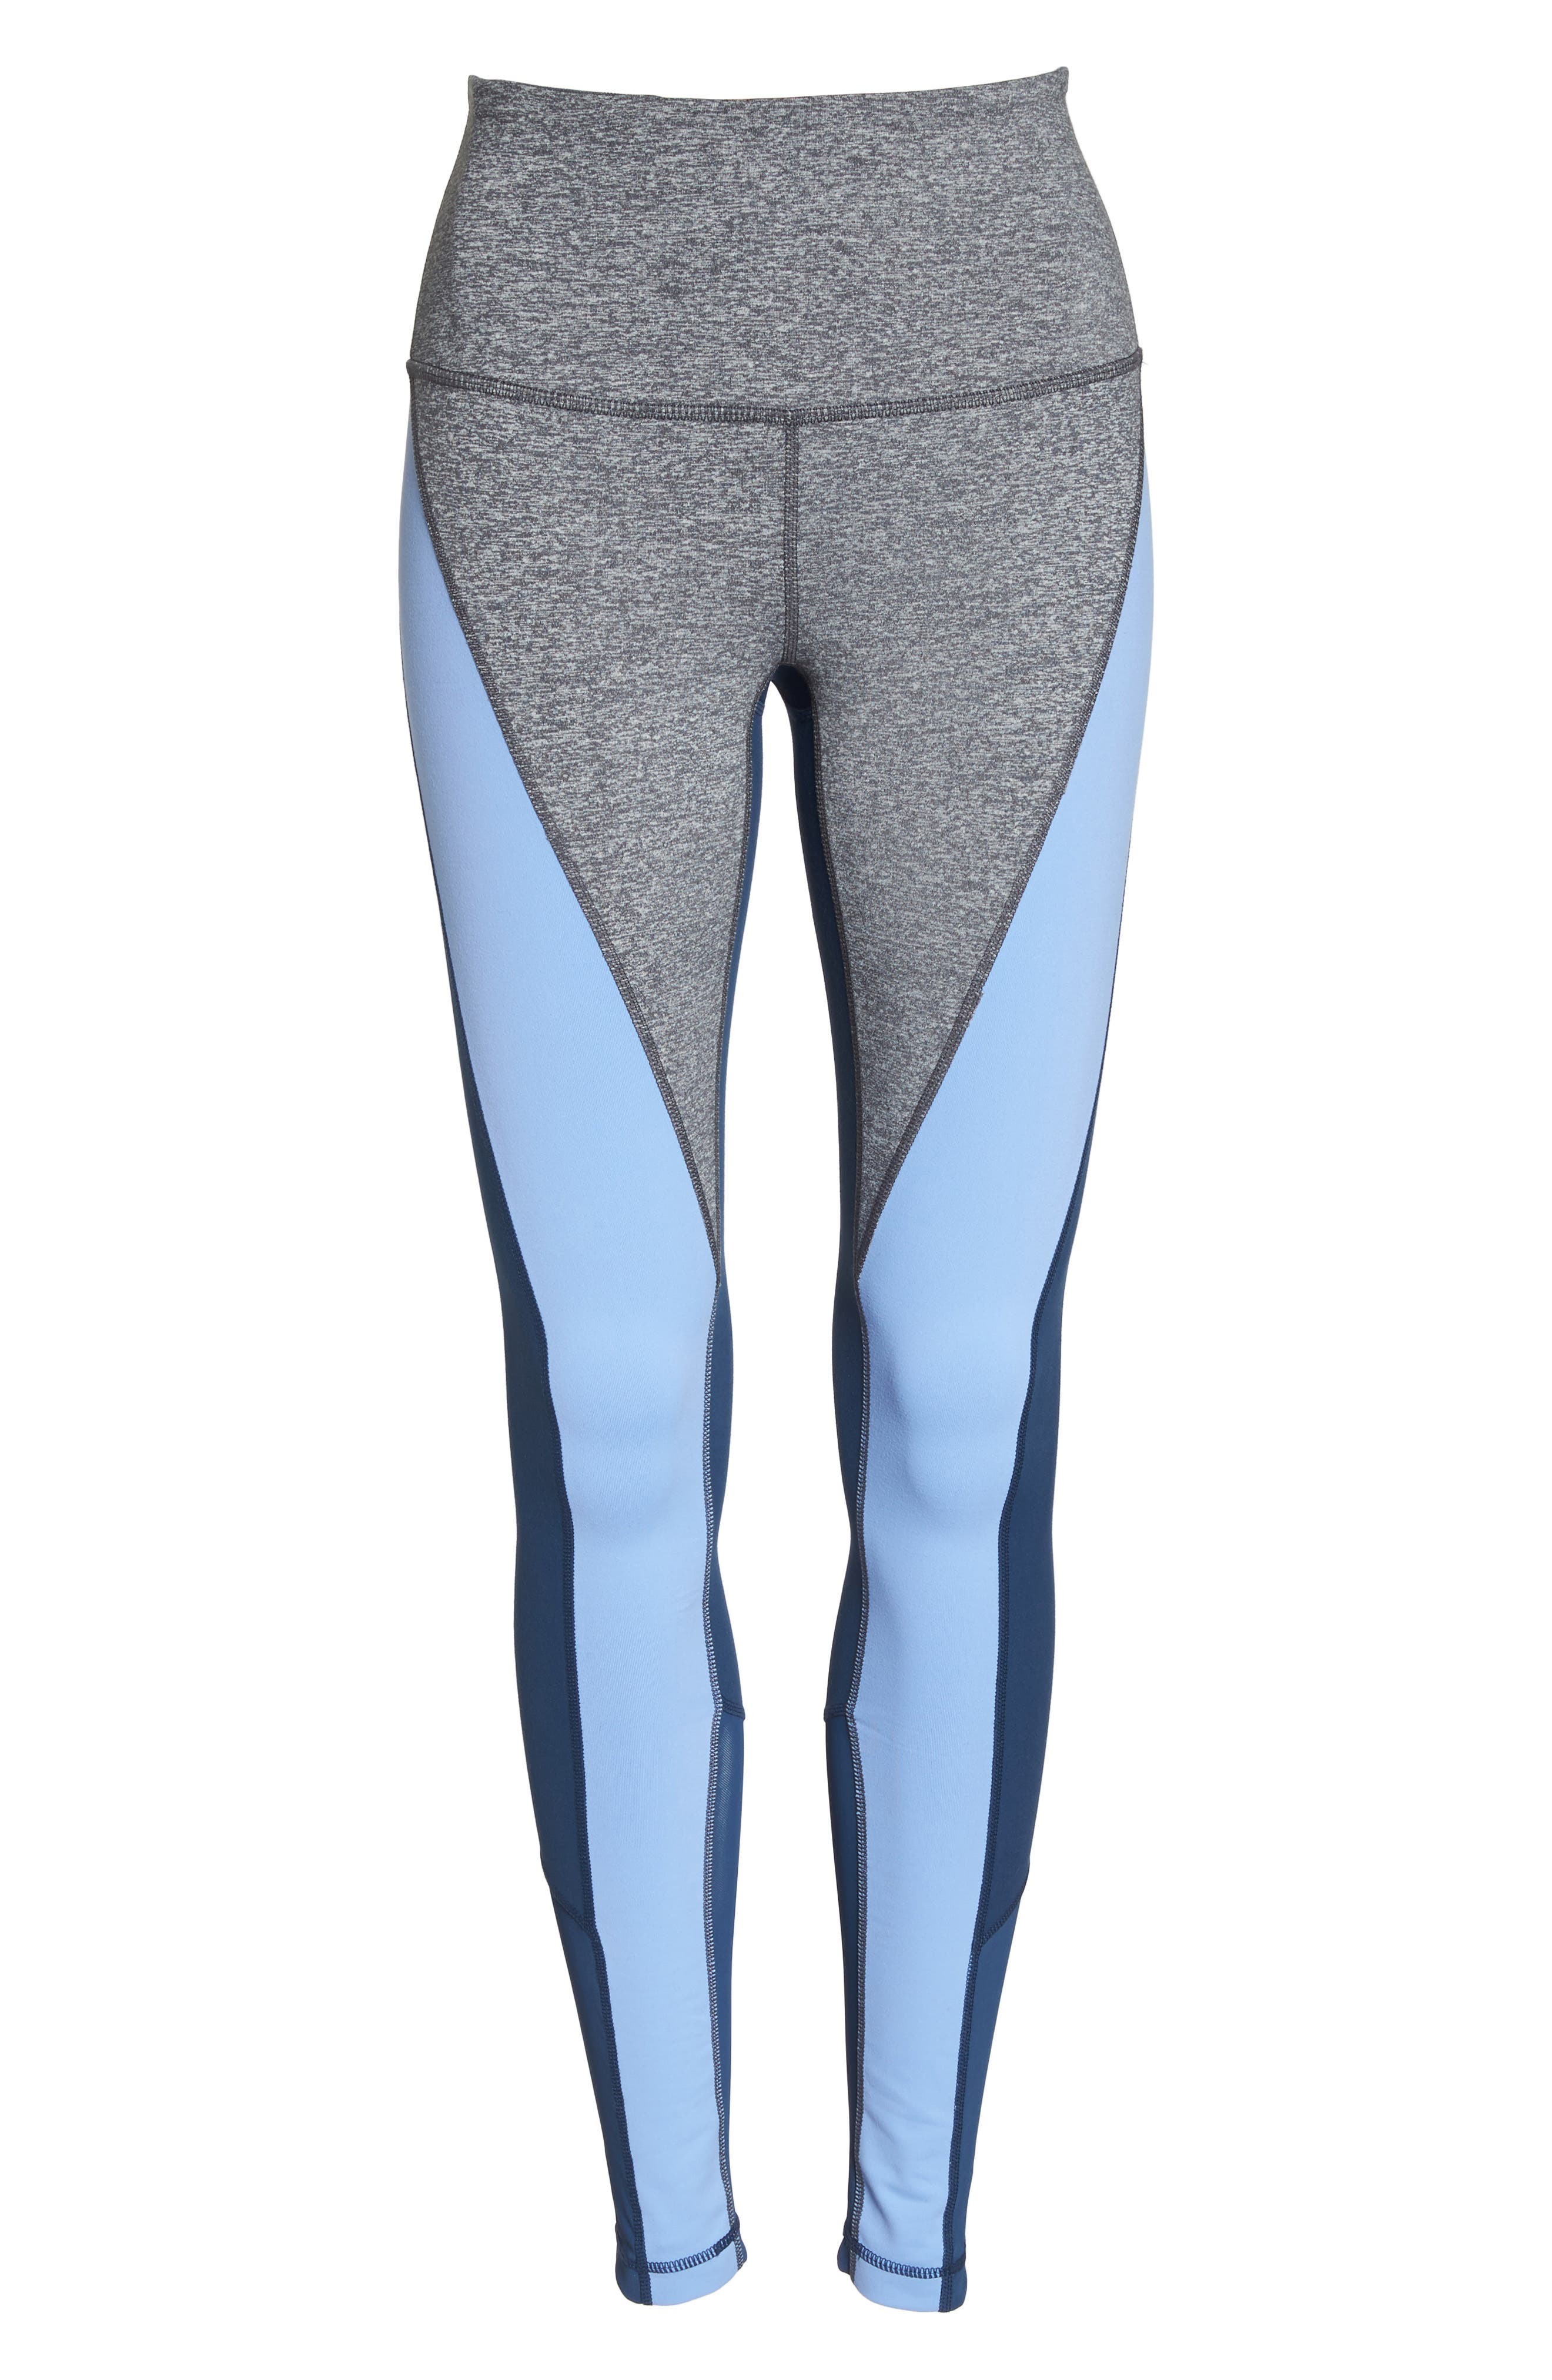 Get in Line High Waist Leggings,                             Alternate thumbnail 7, color,                             030